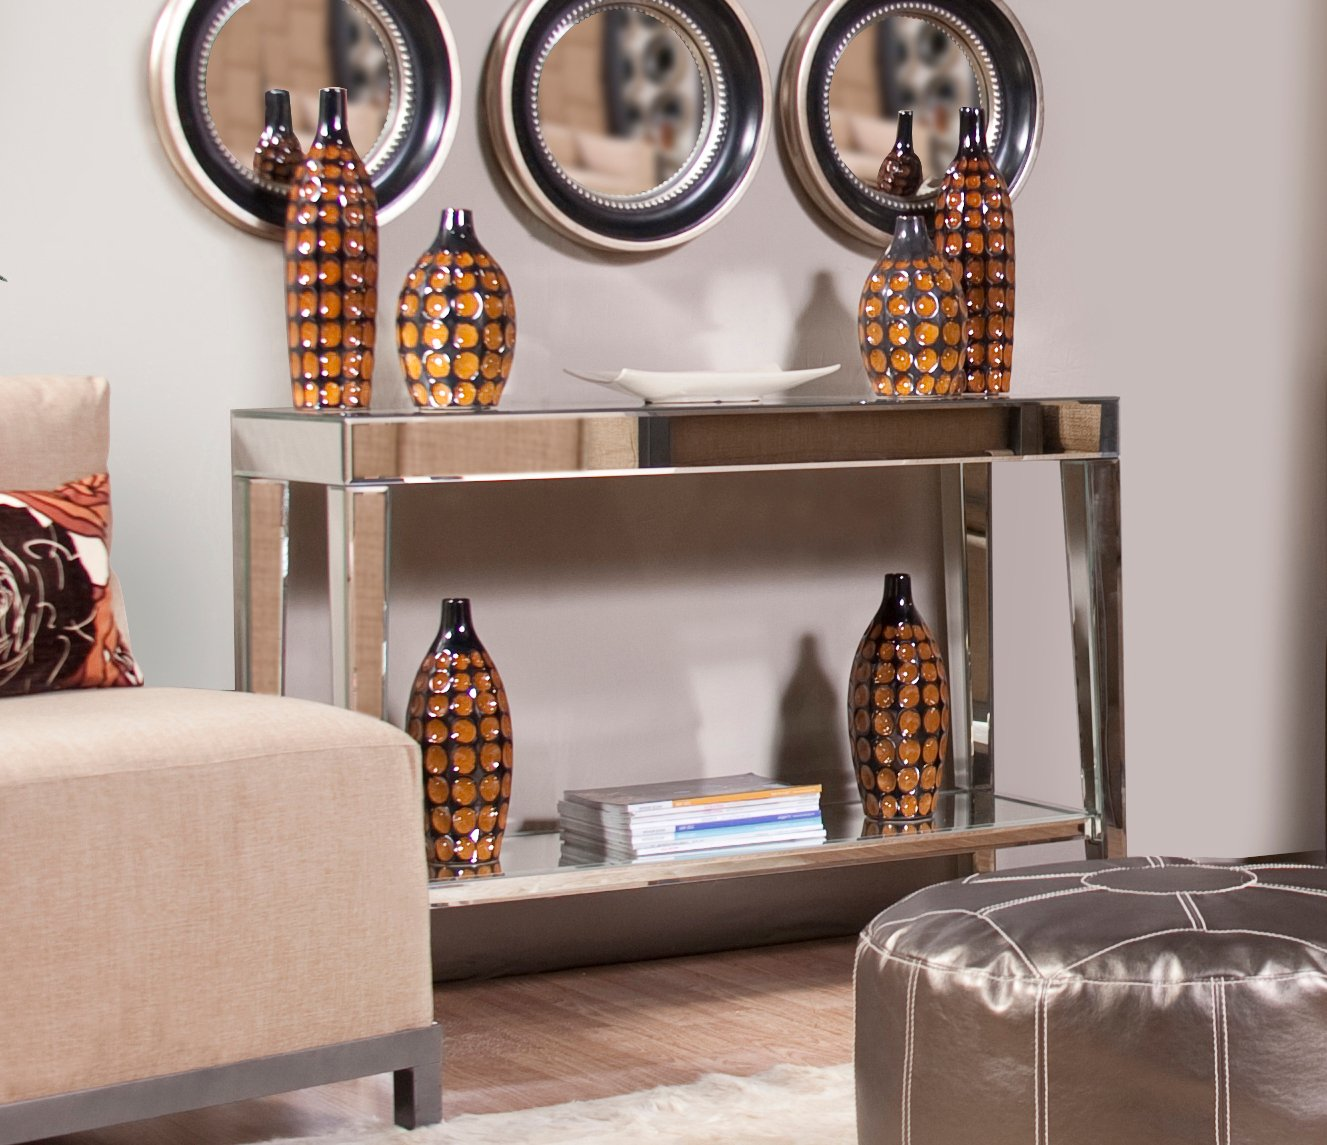 Amazon howard elliott 11096 mirrored console table with a amazon howard elliott 11096 mirrored console table with a bottom shelf home kitchen geotapseo Image collections